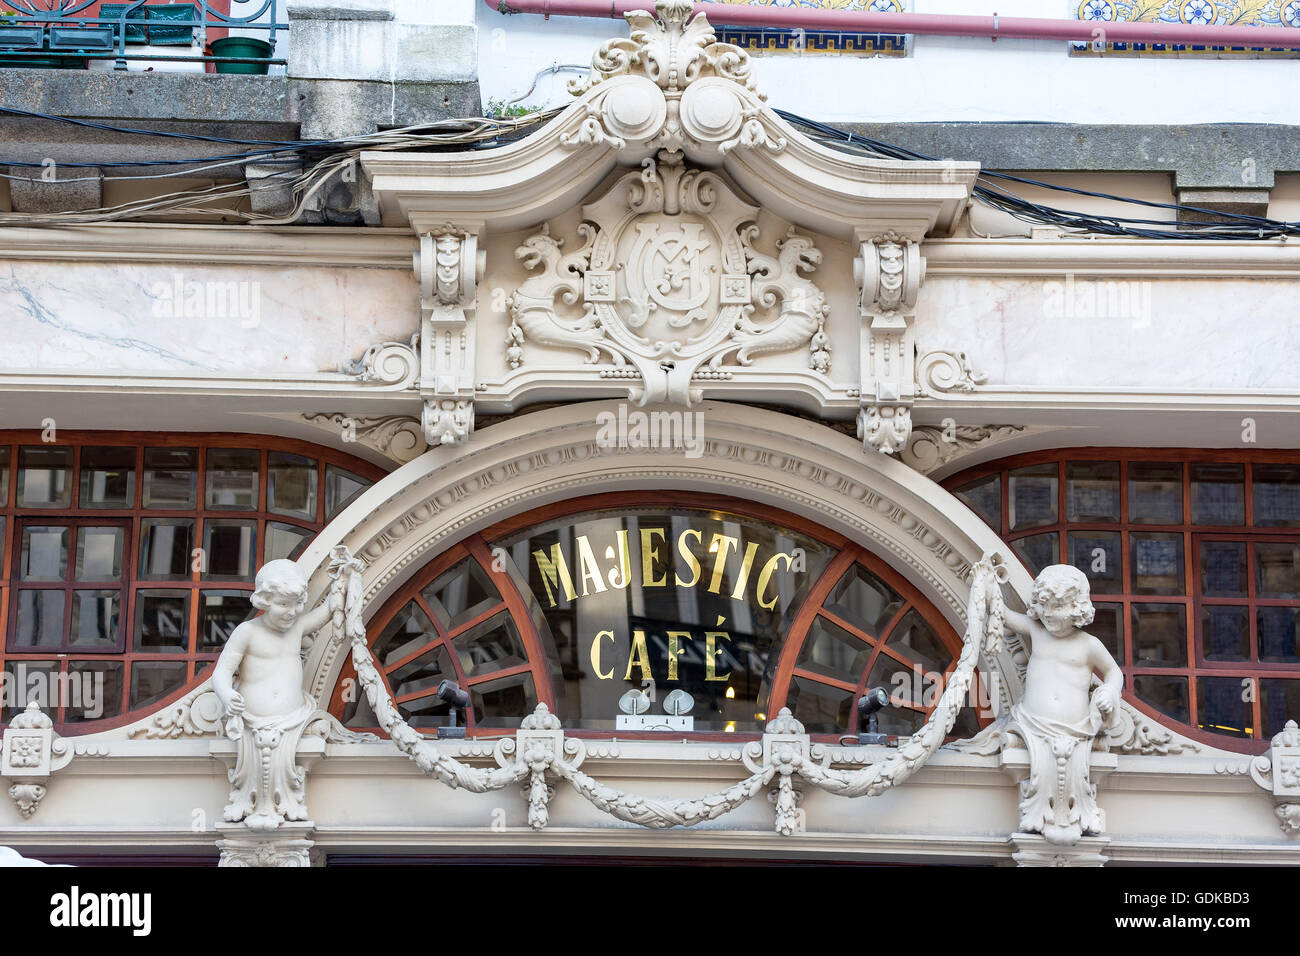 Café Majestic, art nouveau cafe, tavern, dining restaurant, Porto, District of Porto, Portugal, Europe, Travel, Stock Photo